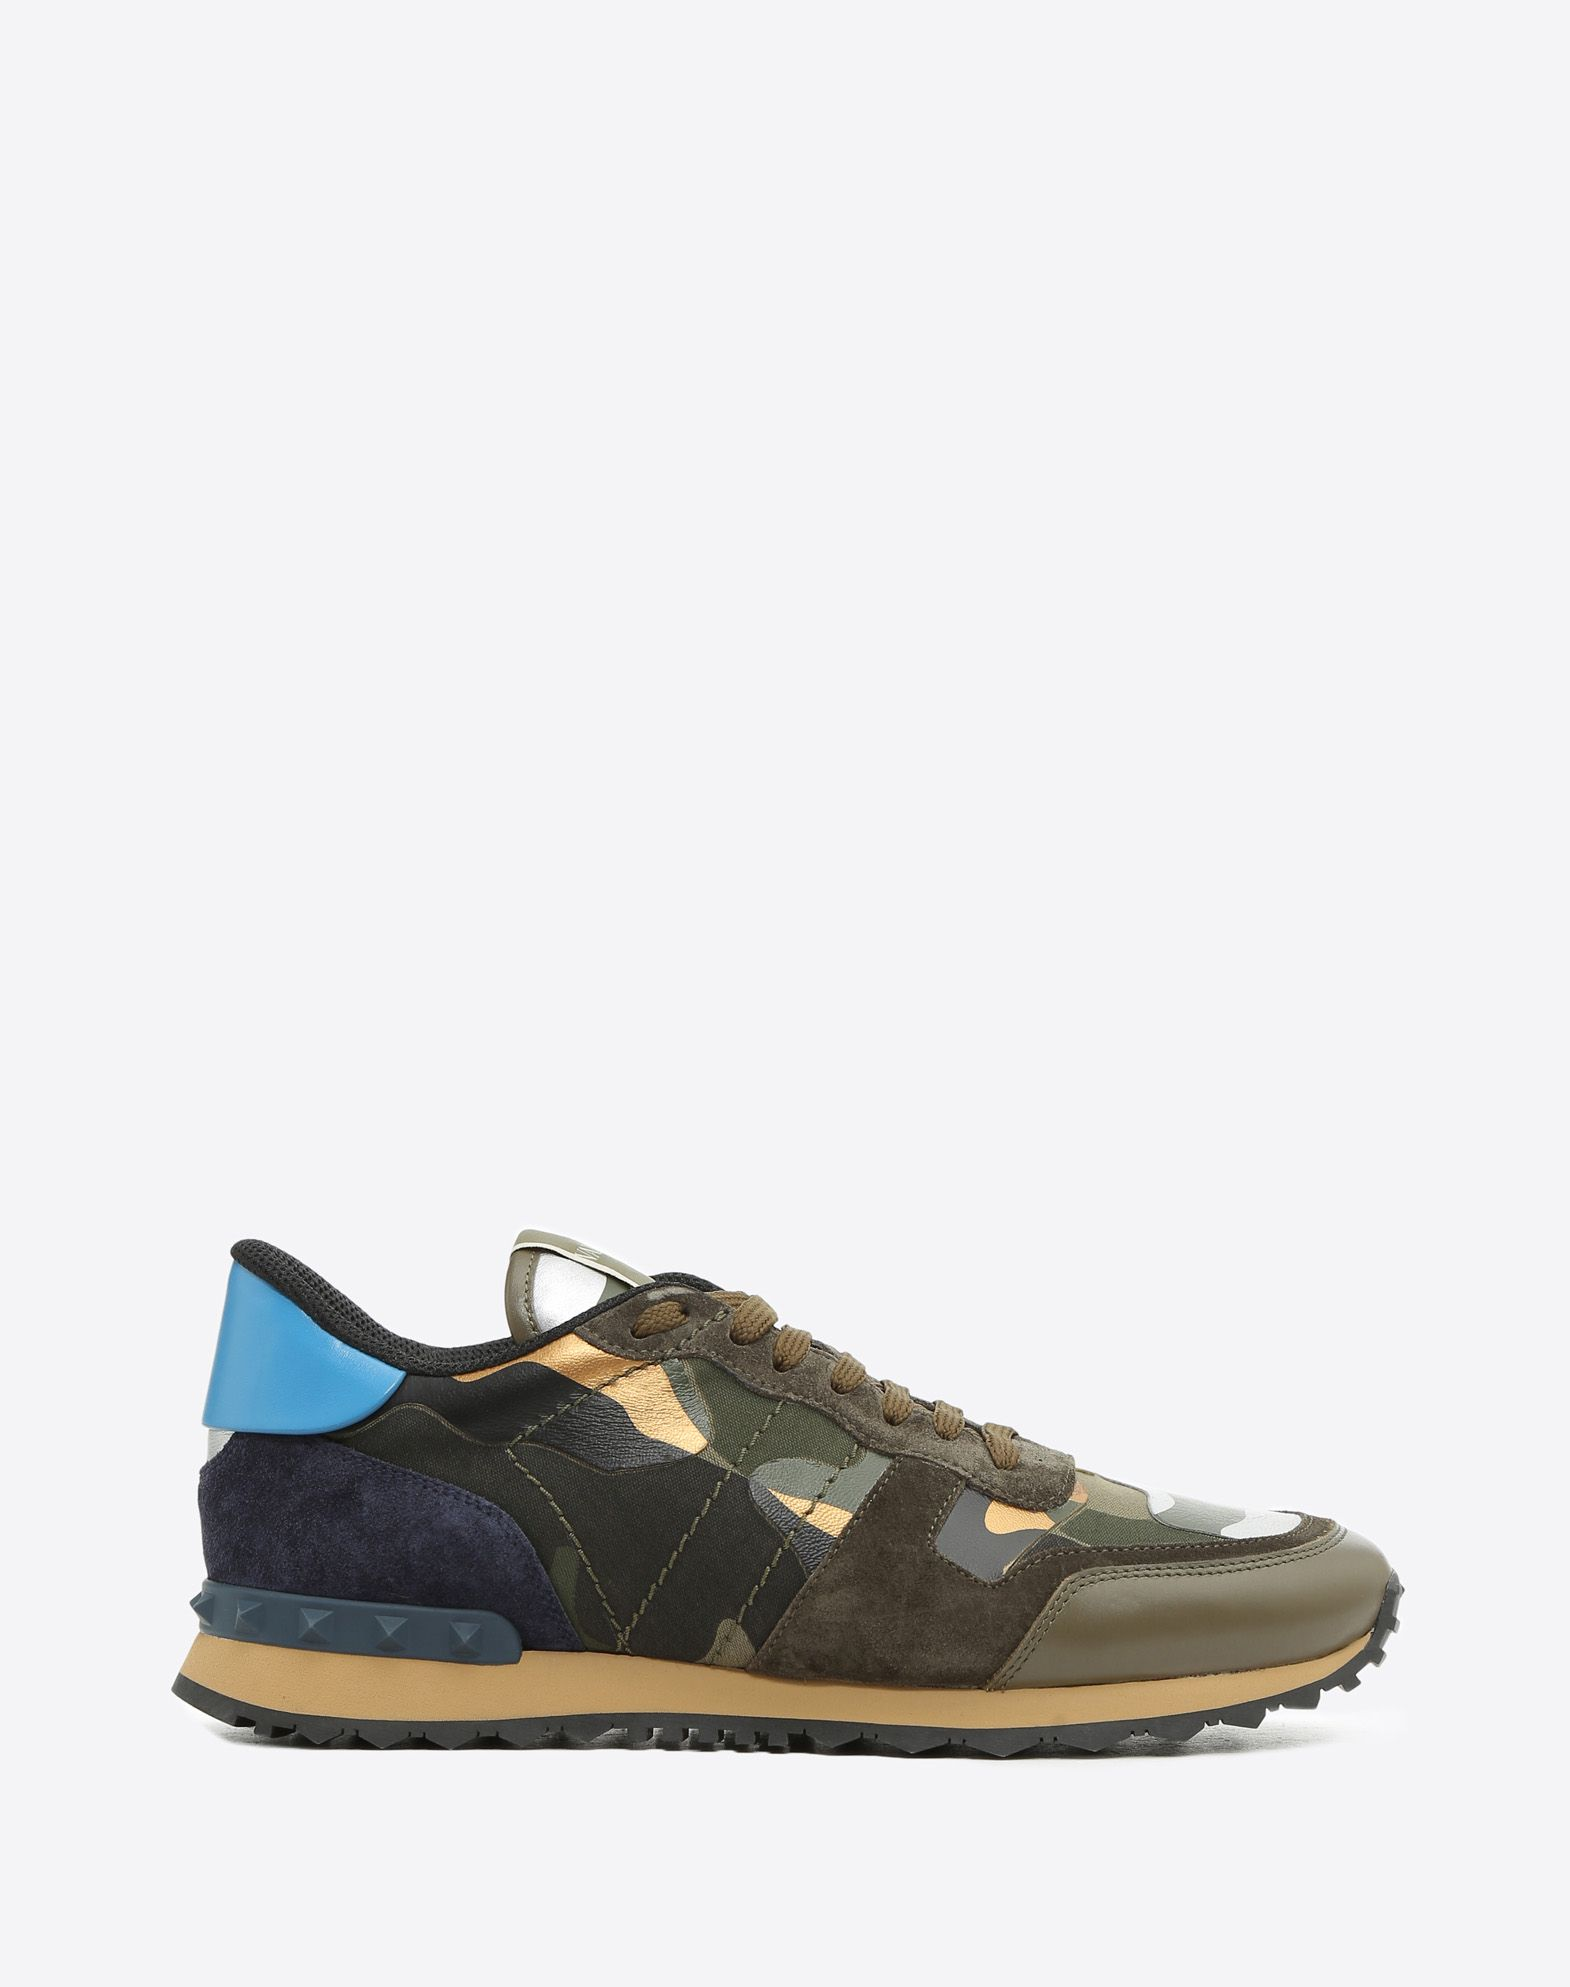 Valentino Rockrunner Sneakers Blue Burgundy Leather and Suede